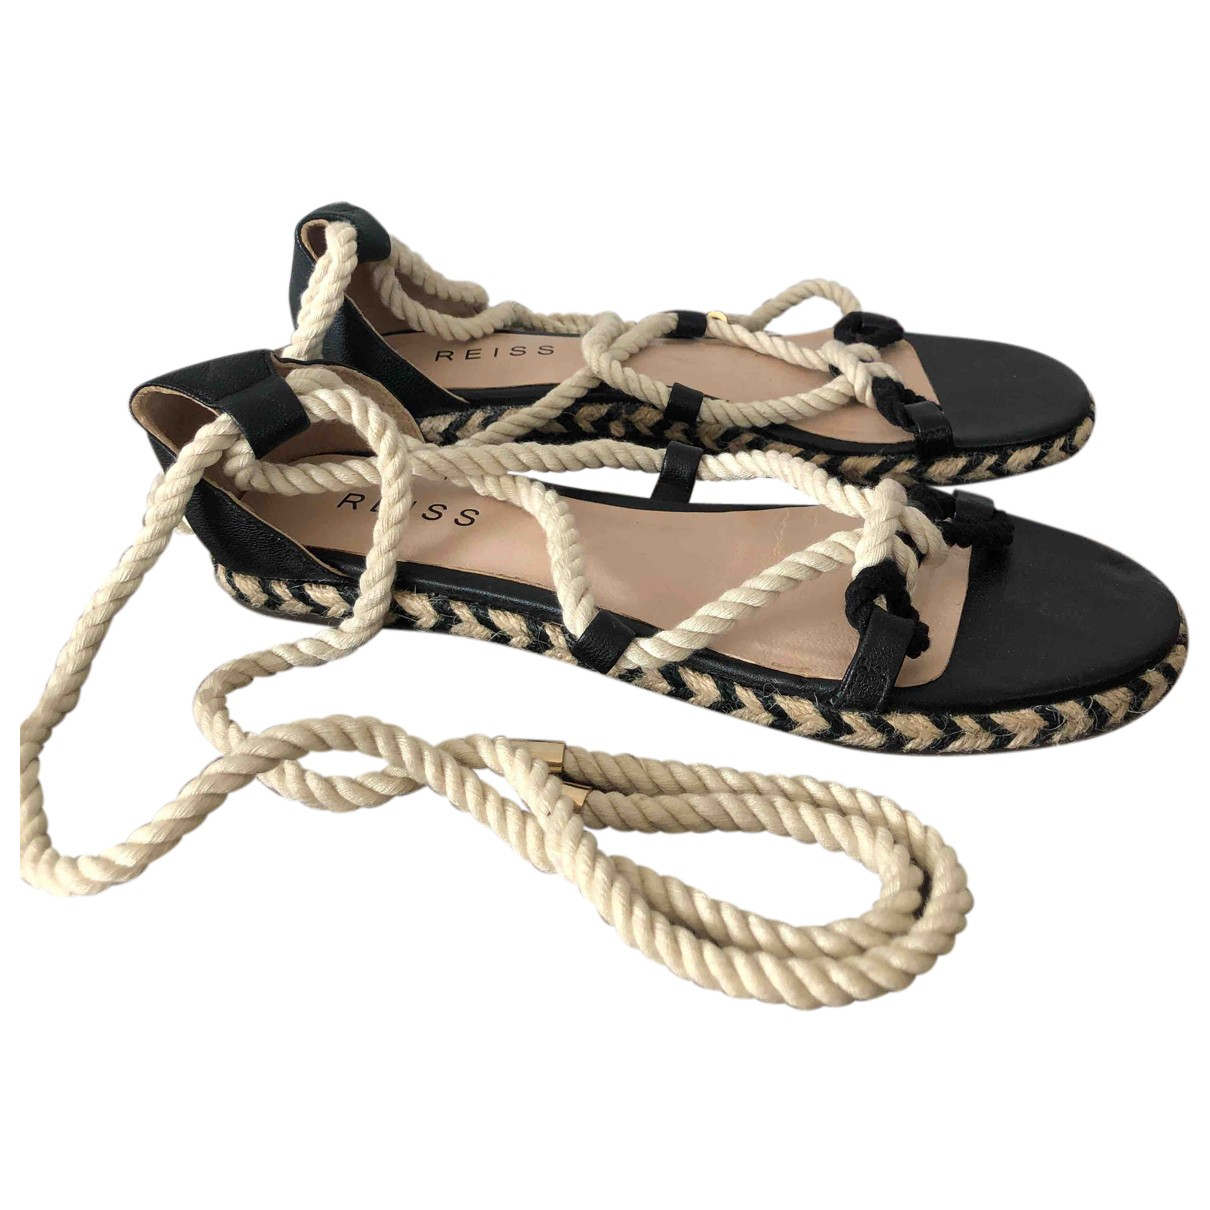 Reiss N Multicolour Leather Sandals for Women 38 EU